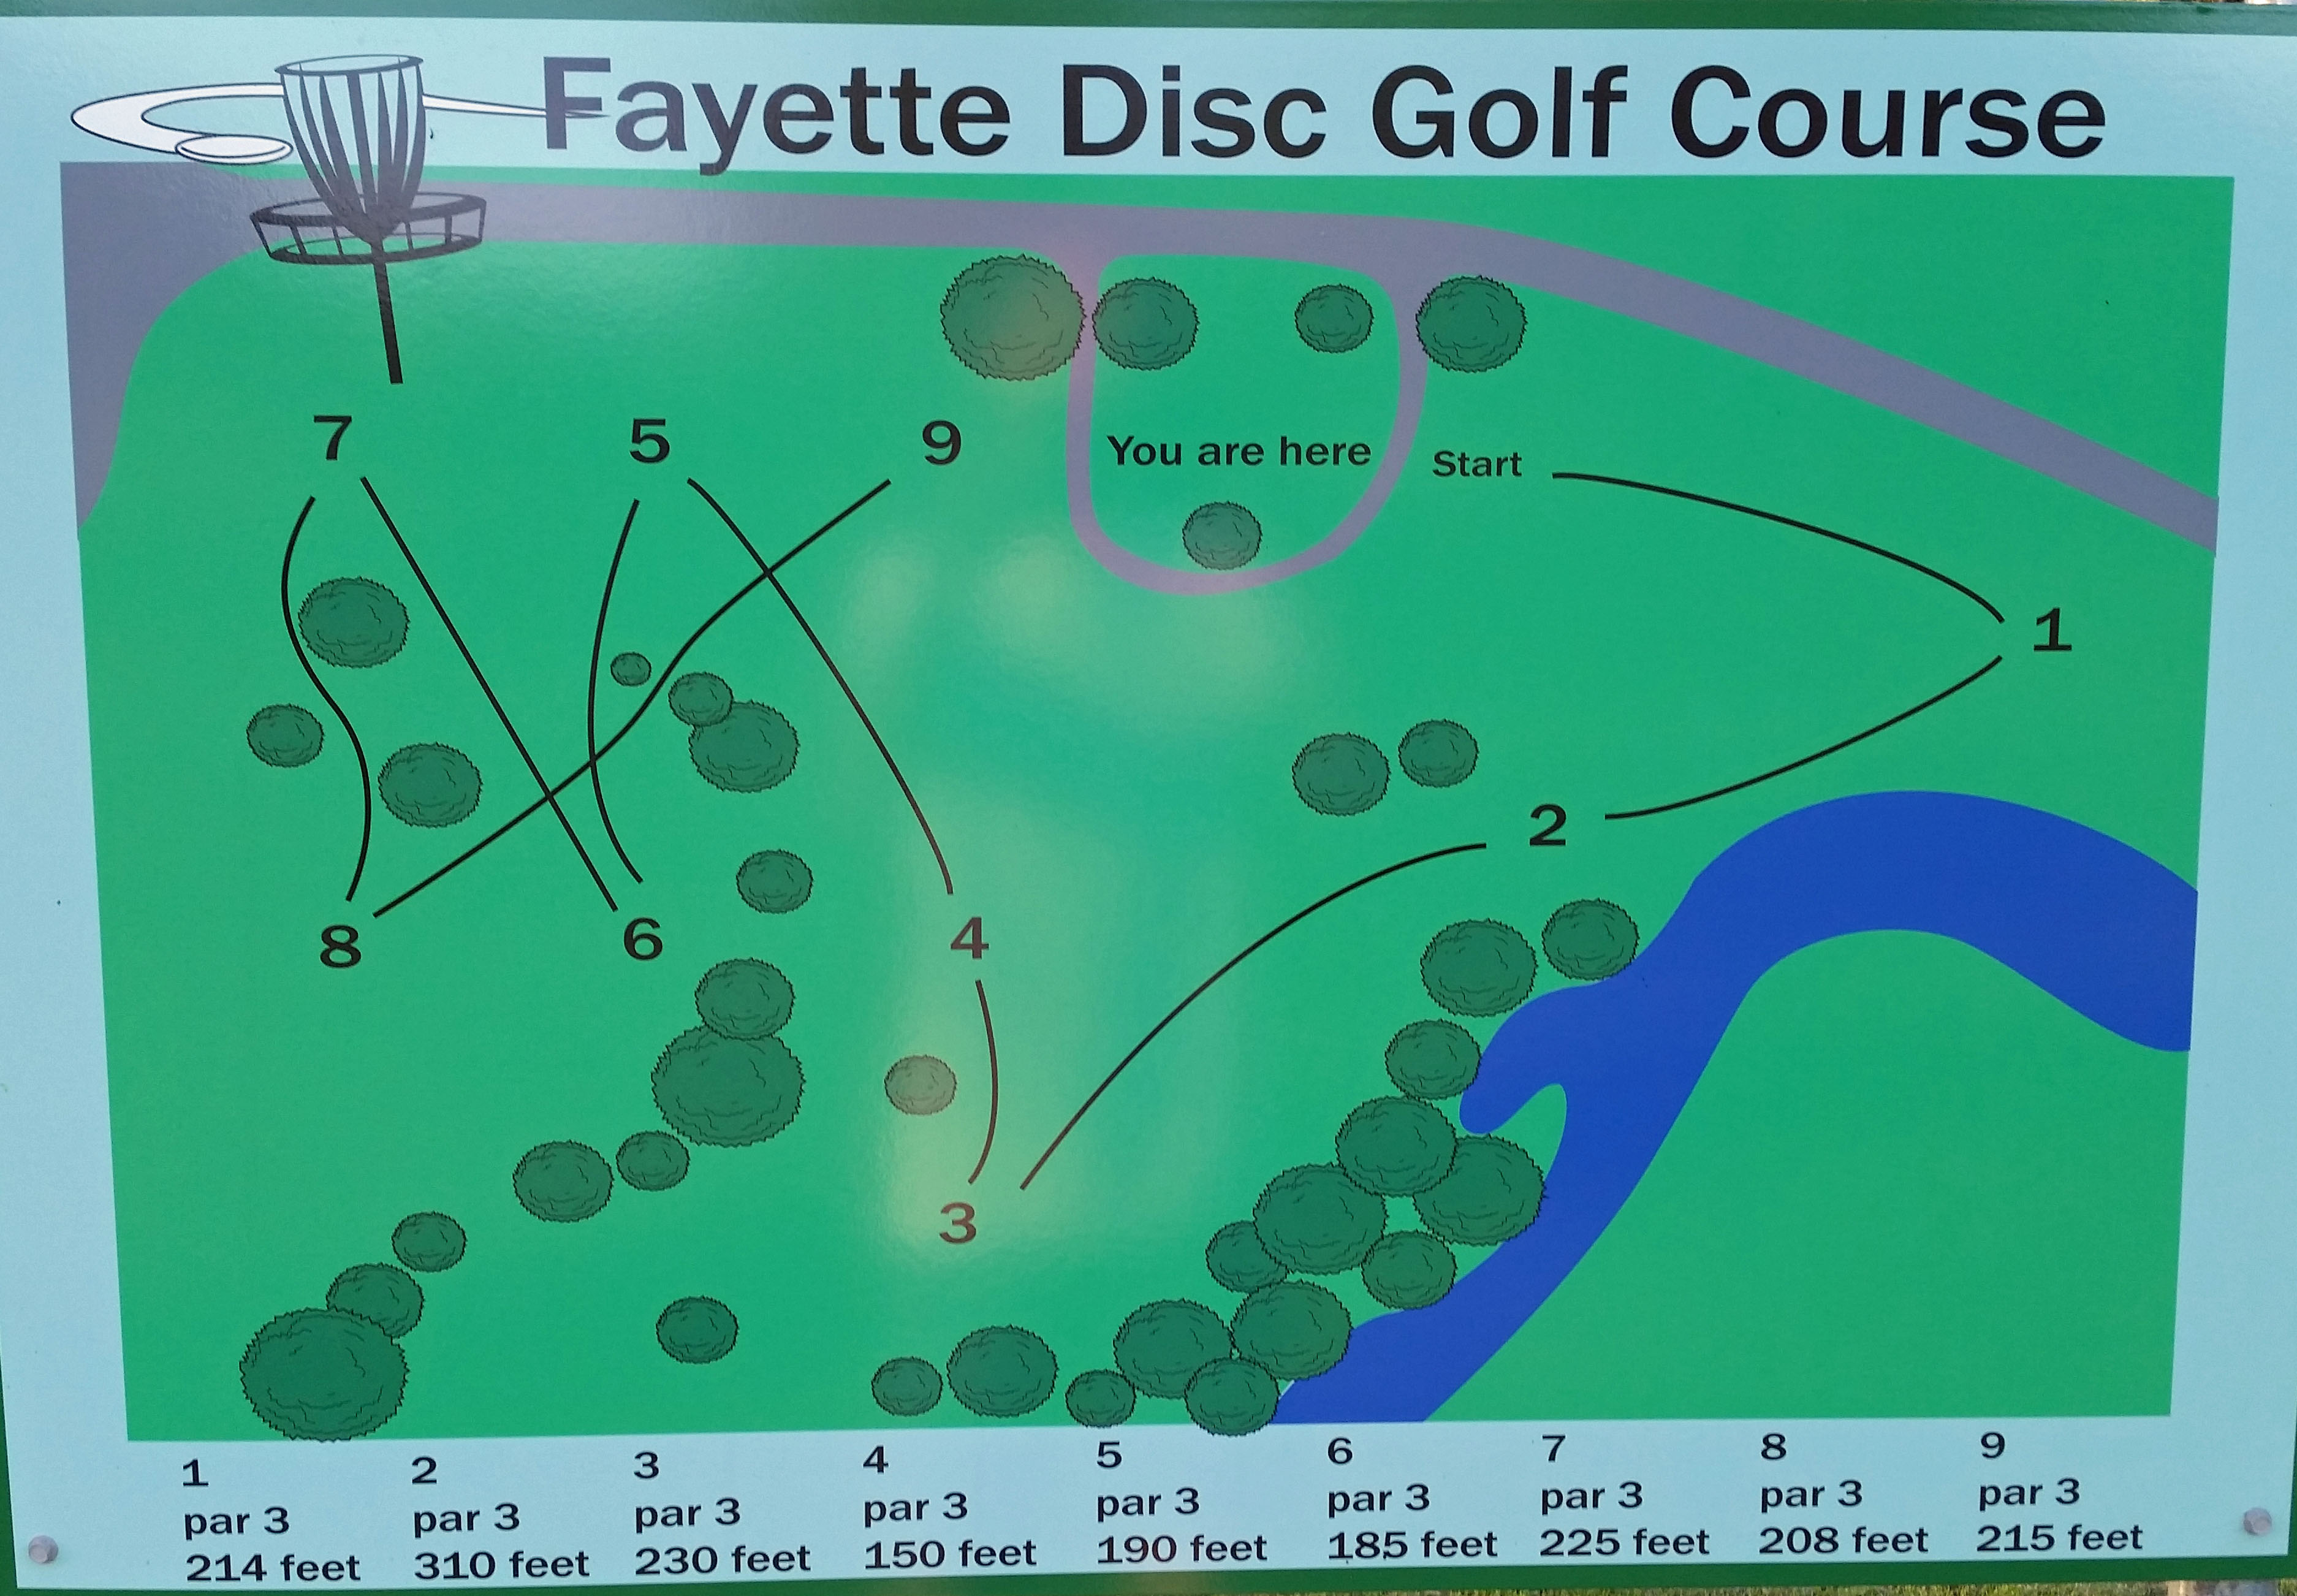 2016DiscGolfCourseSign